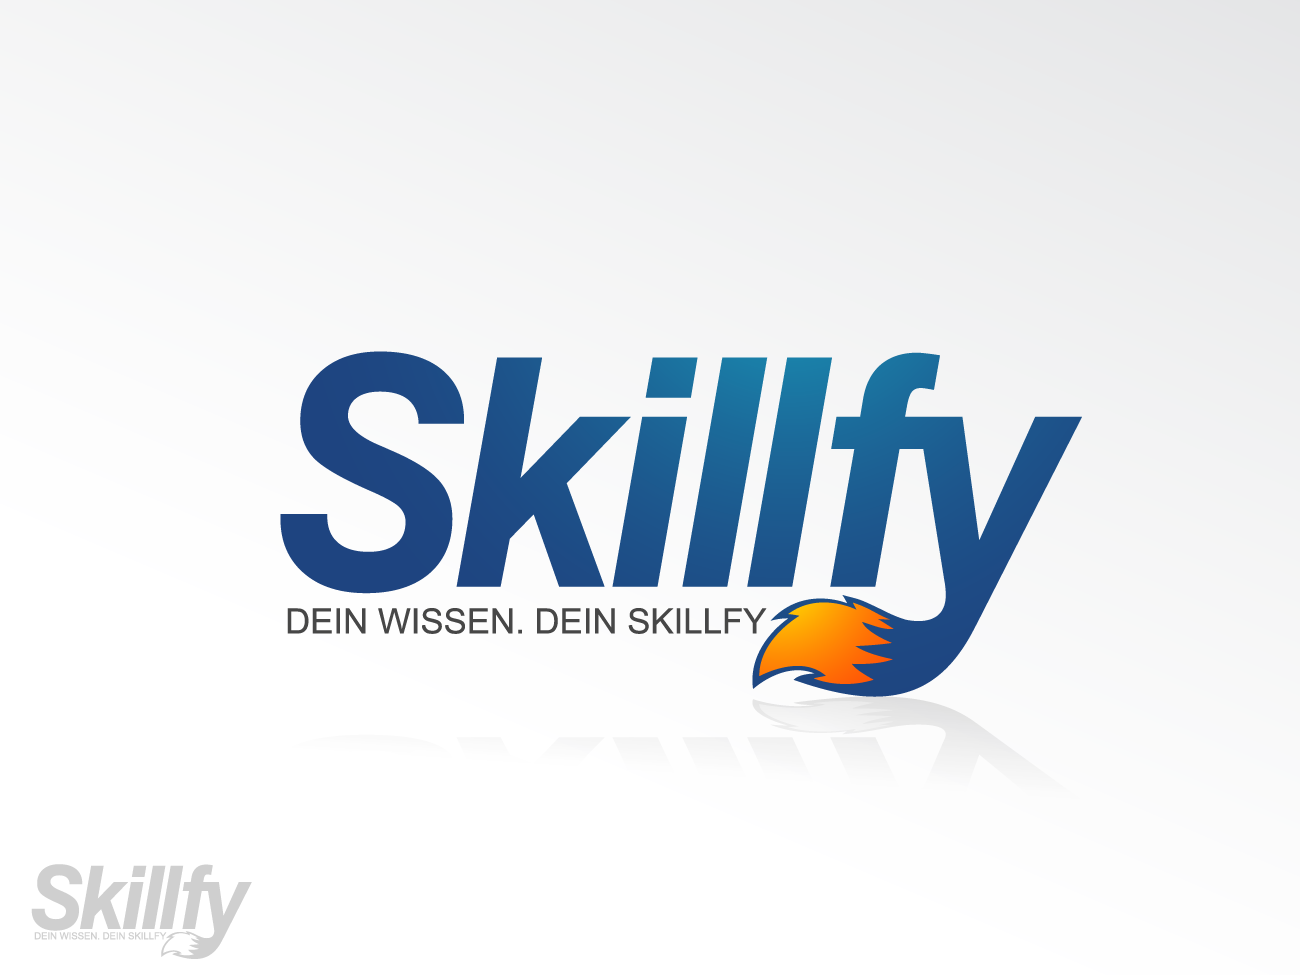 For foxy designers: Create a modern startup logo for SKILLFY (optional: with a fox mascot symbol)